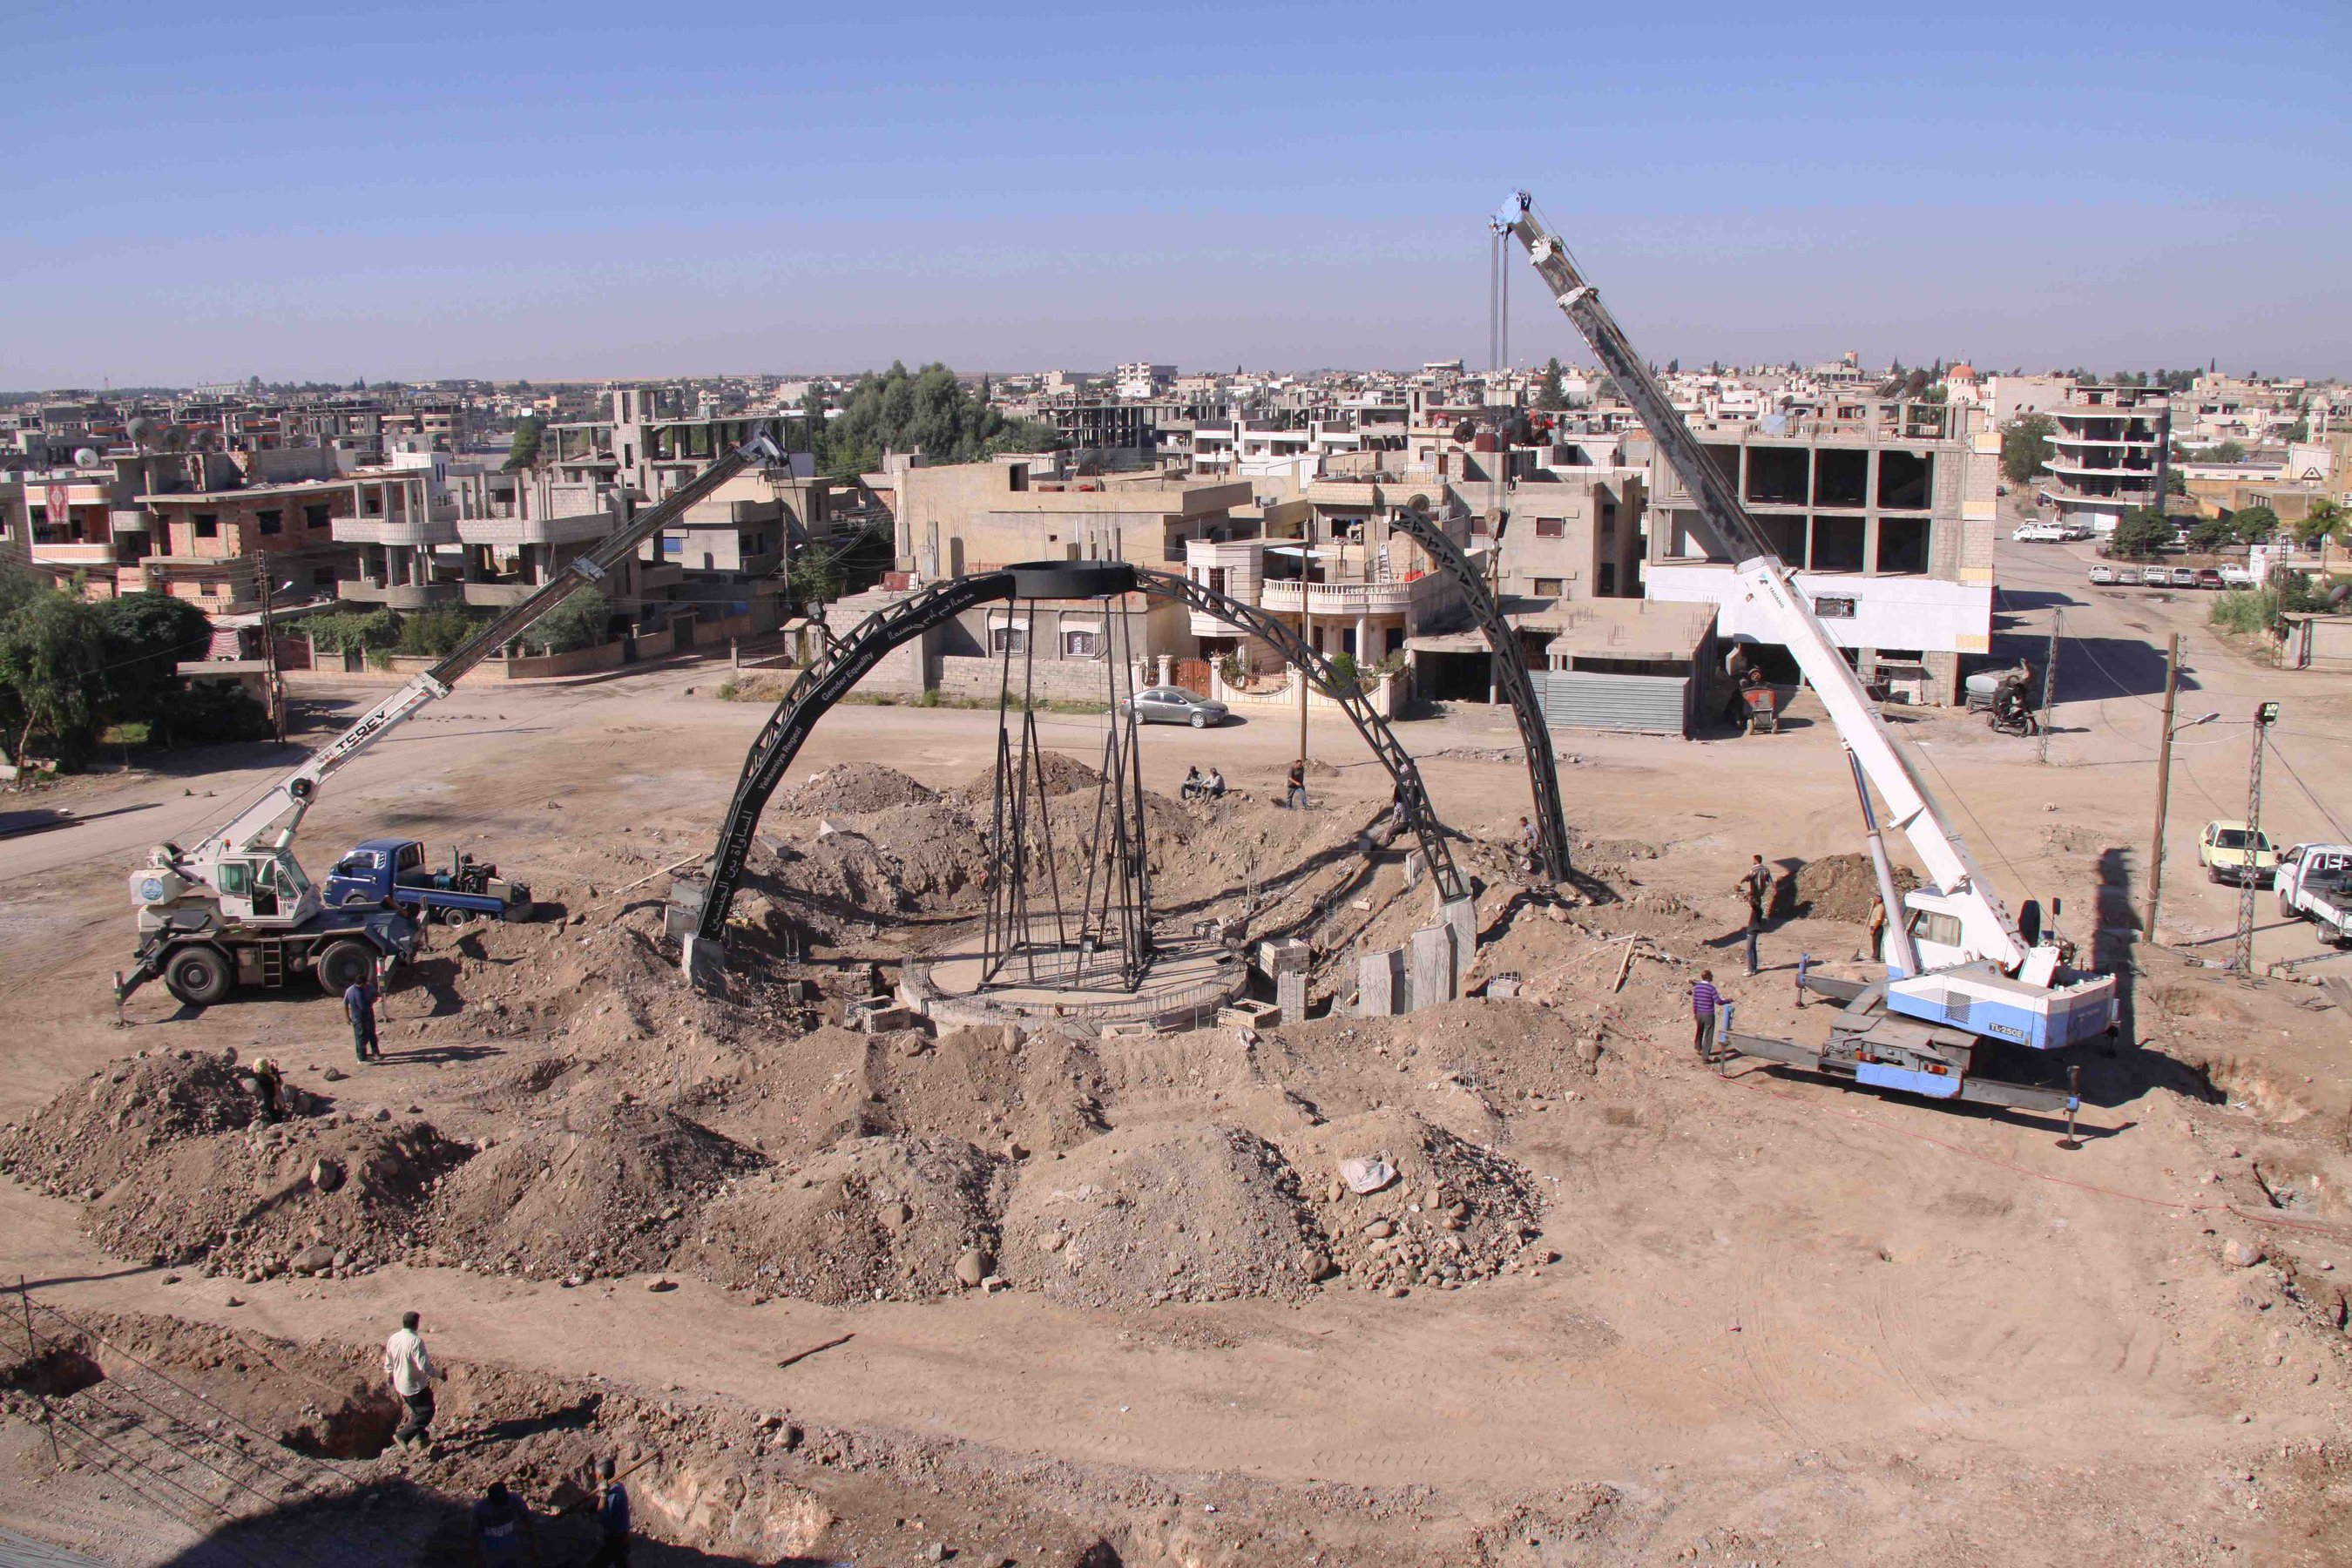 New World Summit, 2015/2016 (developed in collaboration with the Democratic Self-Administration of Rojava) - Construction of a public parliament